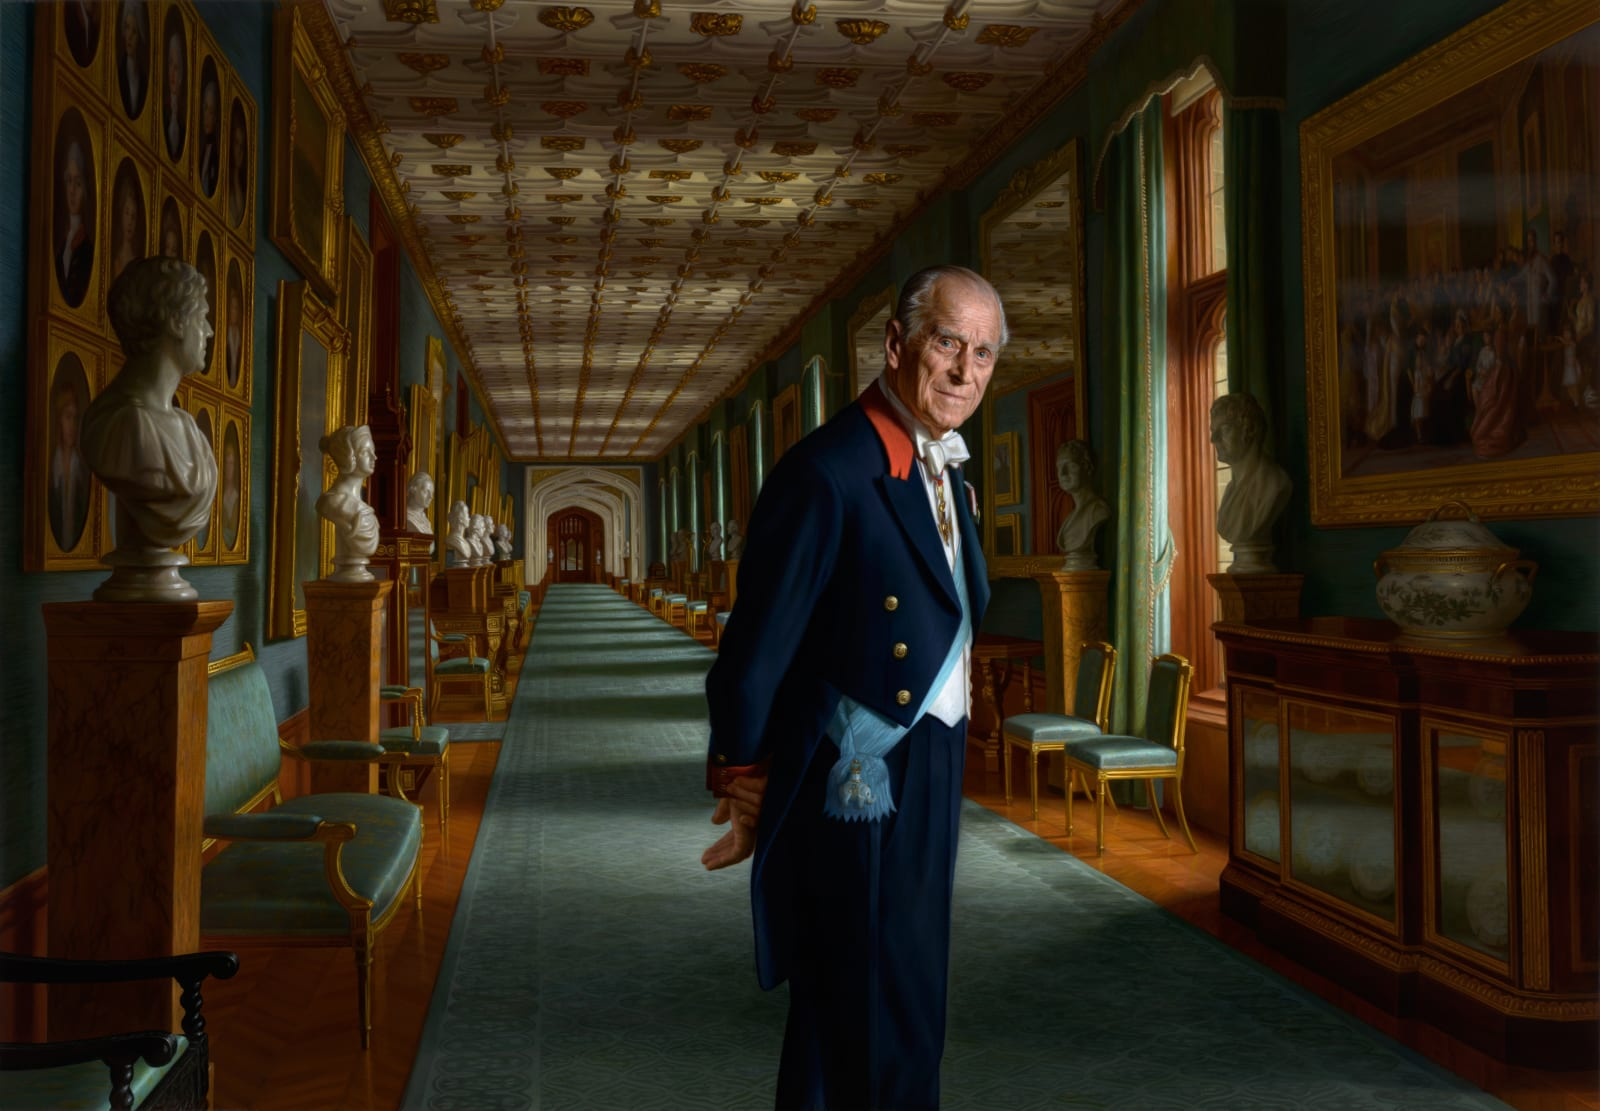 Portrait of HRH The Duke of Edinburgh 2017 Oil on canvas 160 x 230cm The Royal Collection